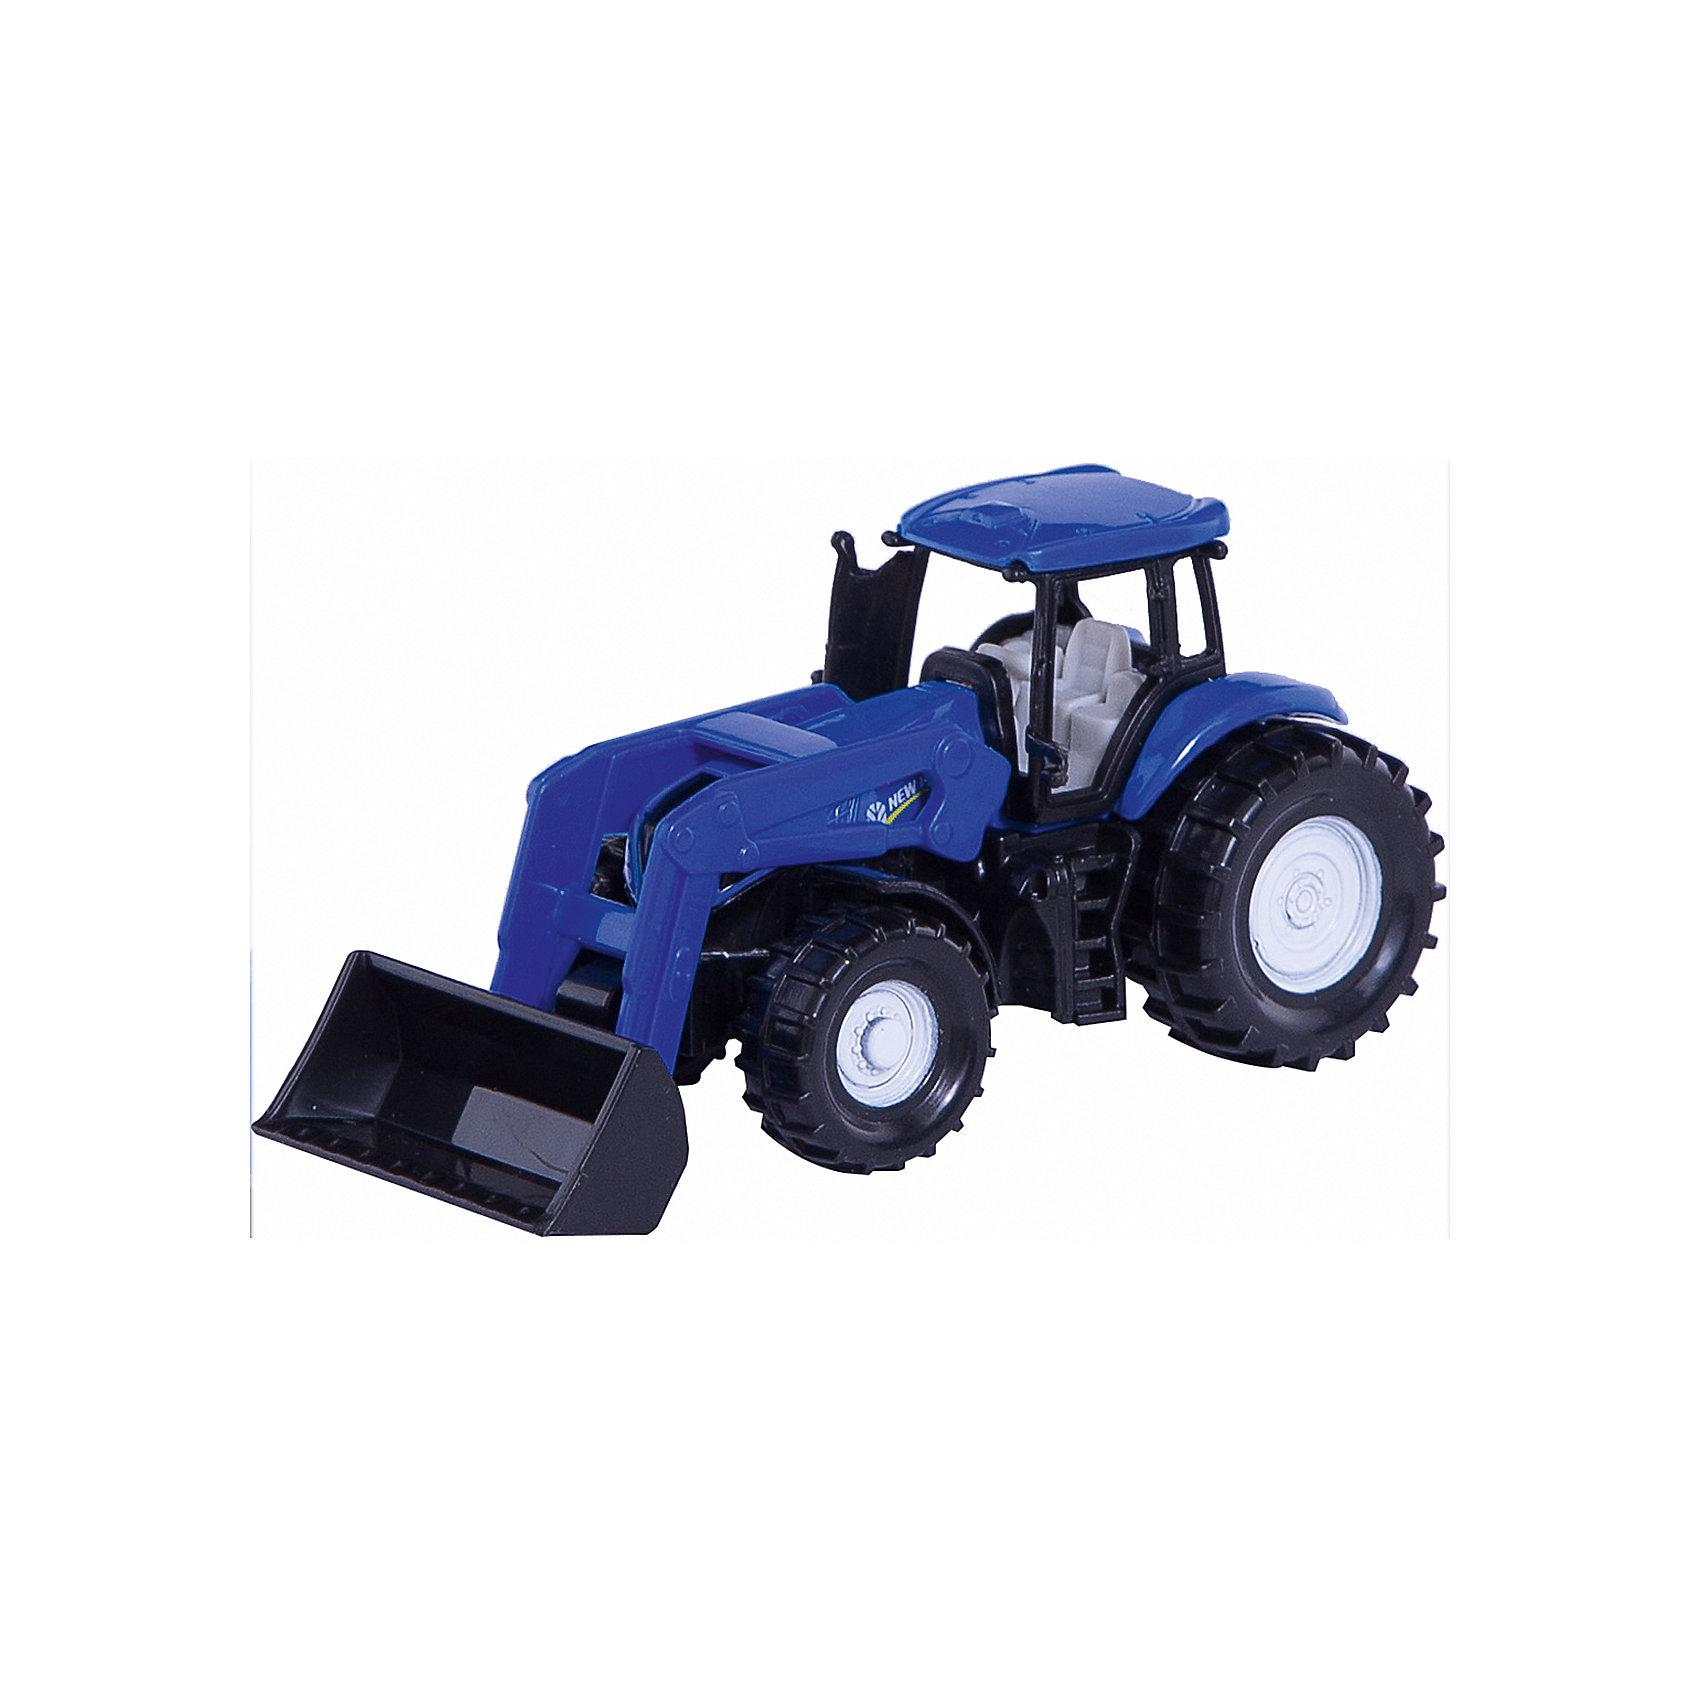 SIKU Трактор New Holland, синий (1:72), SIKU siku трактор new holland синий 1 72 siku